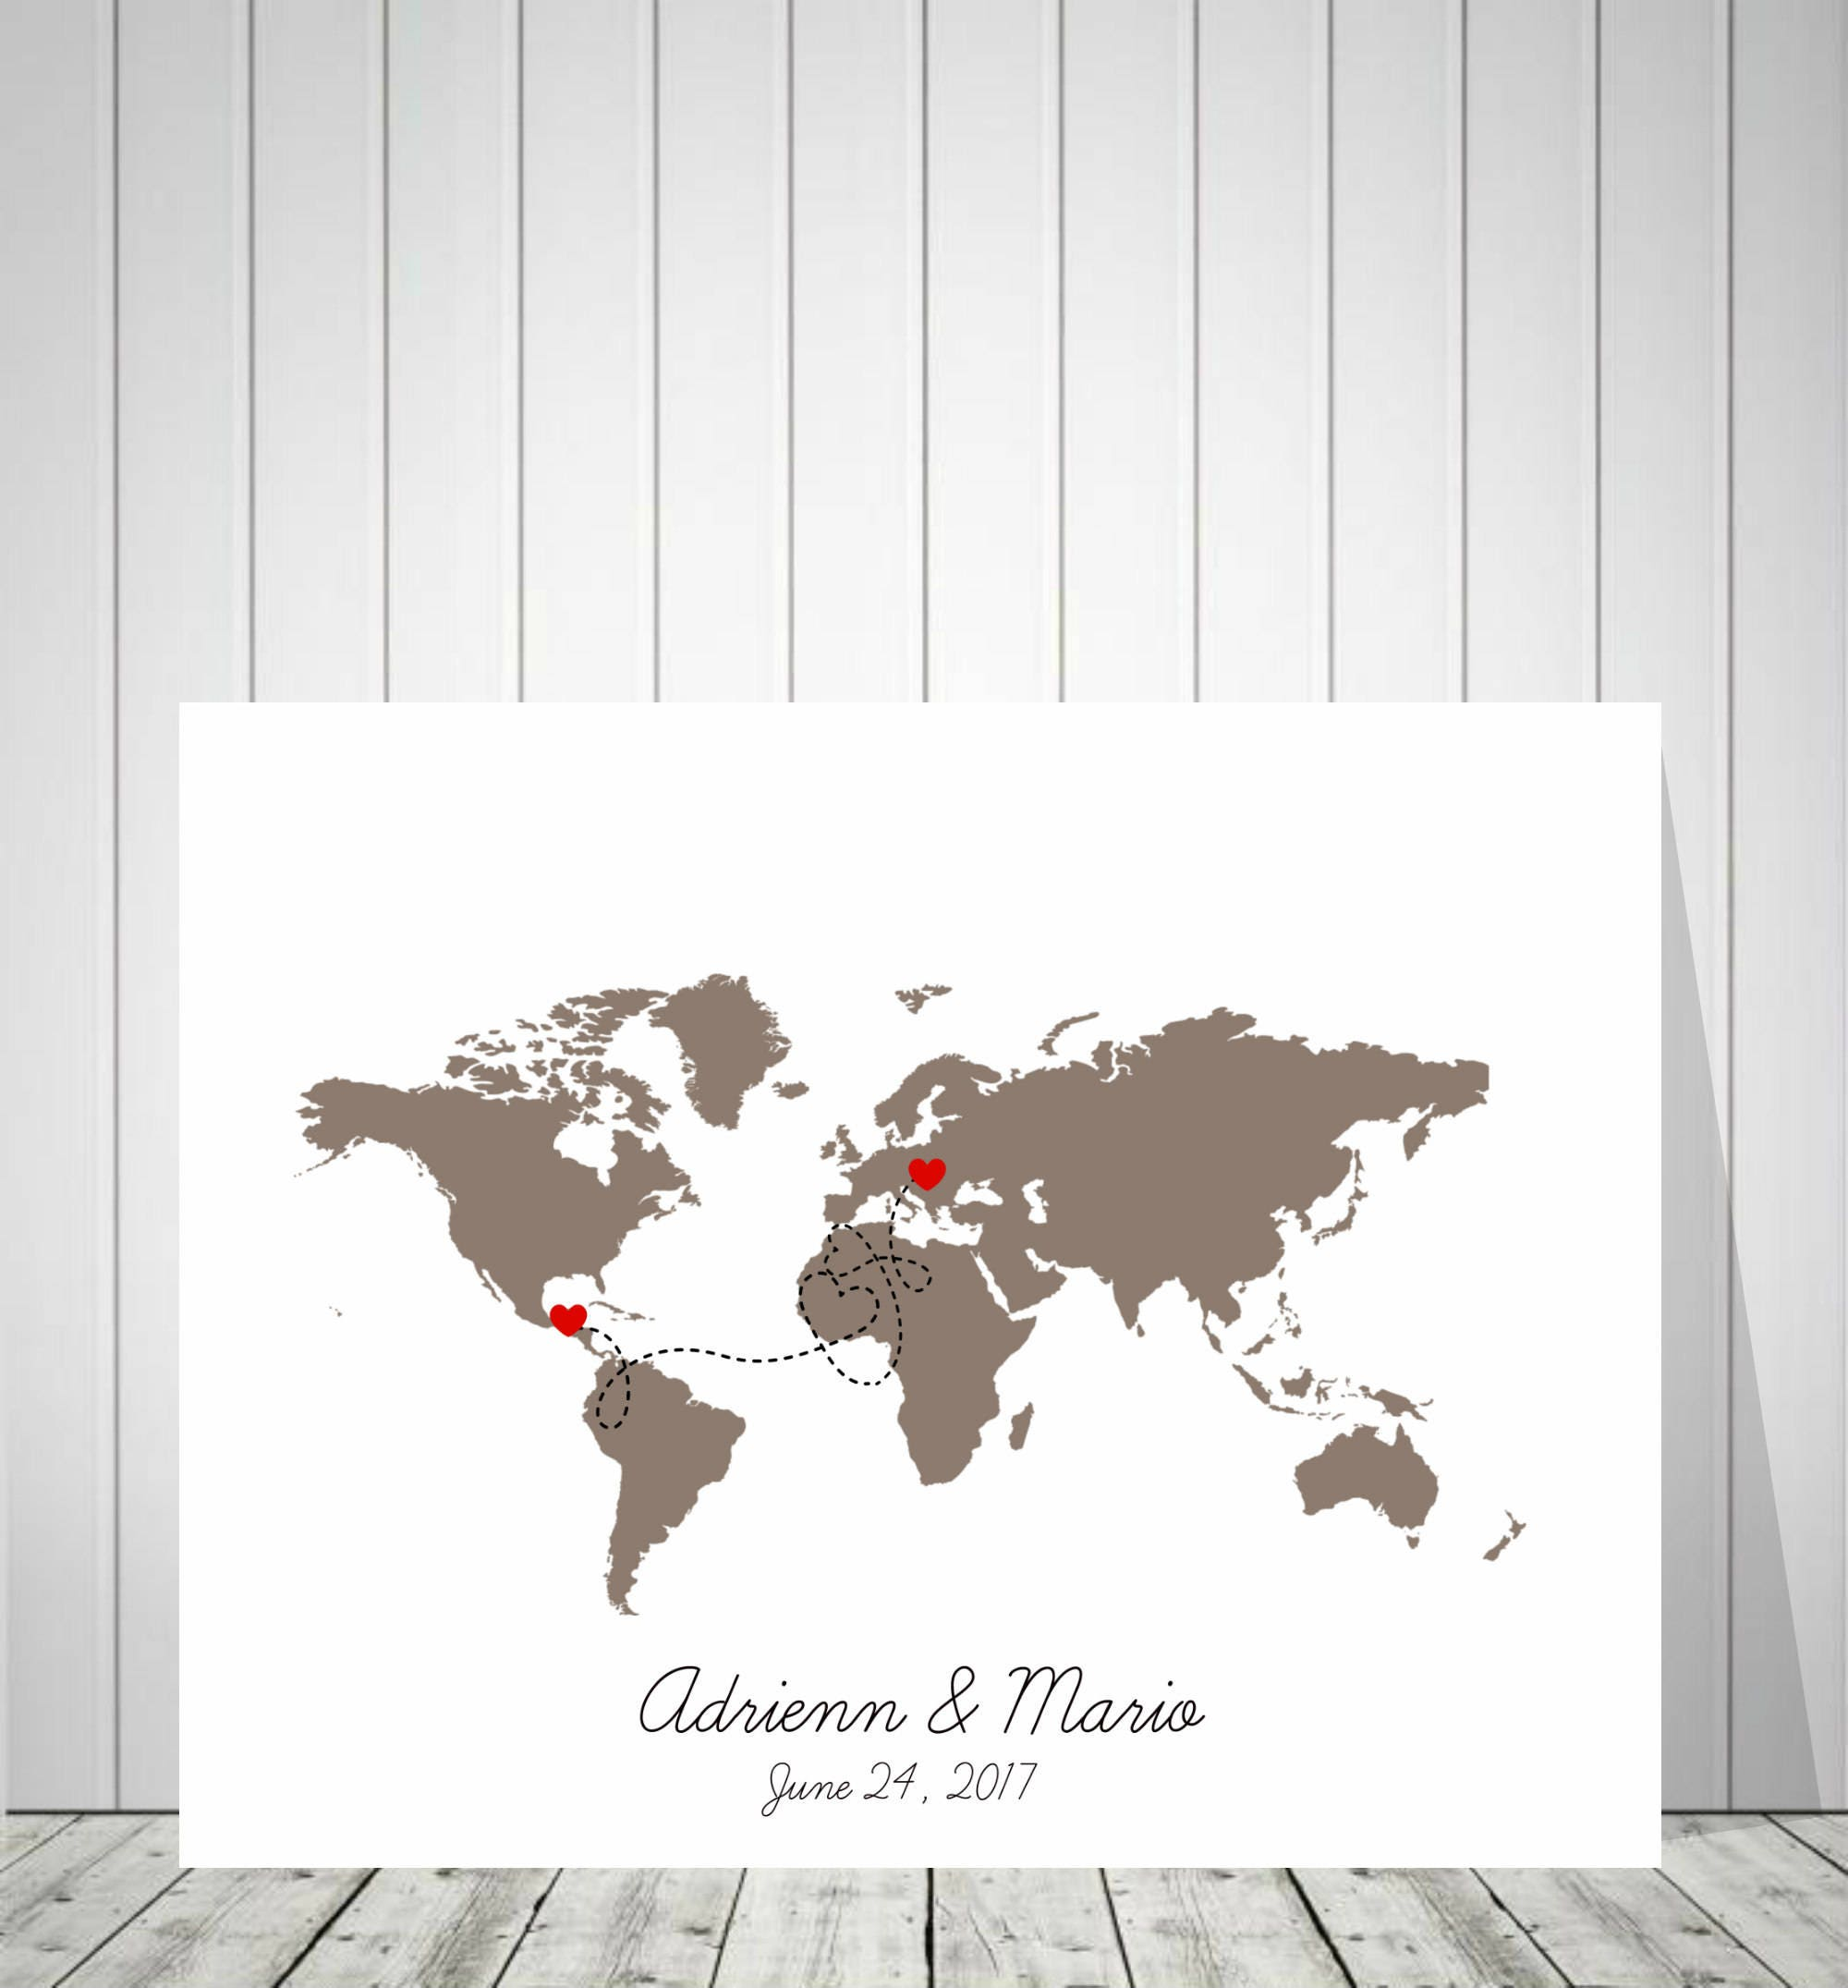 World map canvas alternative wedding guest book map guest book world map canvas alternative wedding guest book map guest book wedding world map signature guest book 1 year anniversary gift 51077 gumiabroncs Gallery